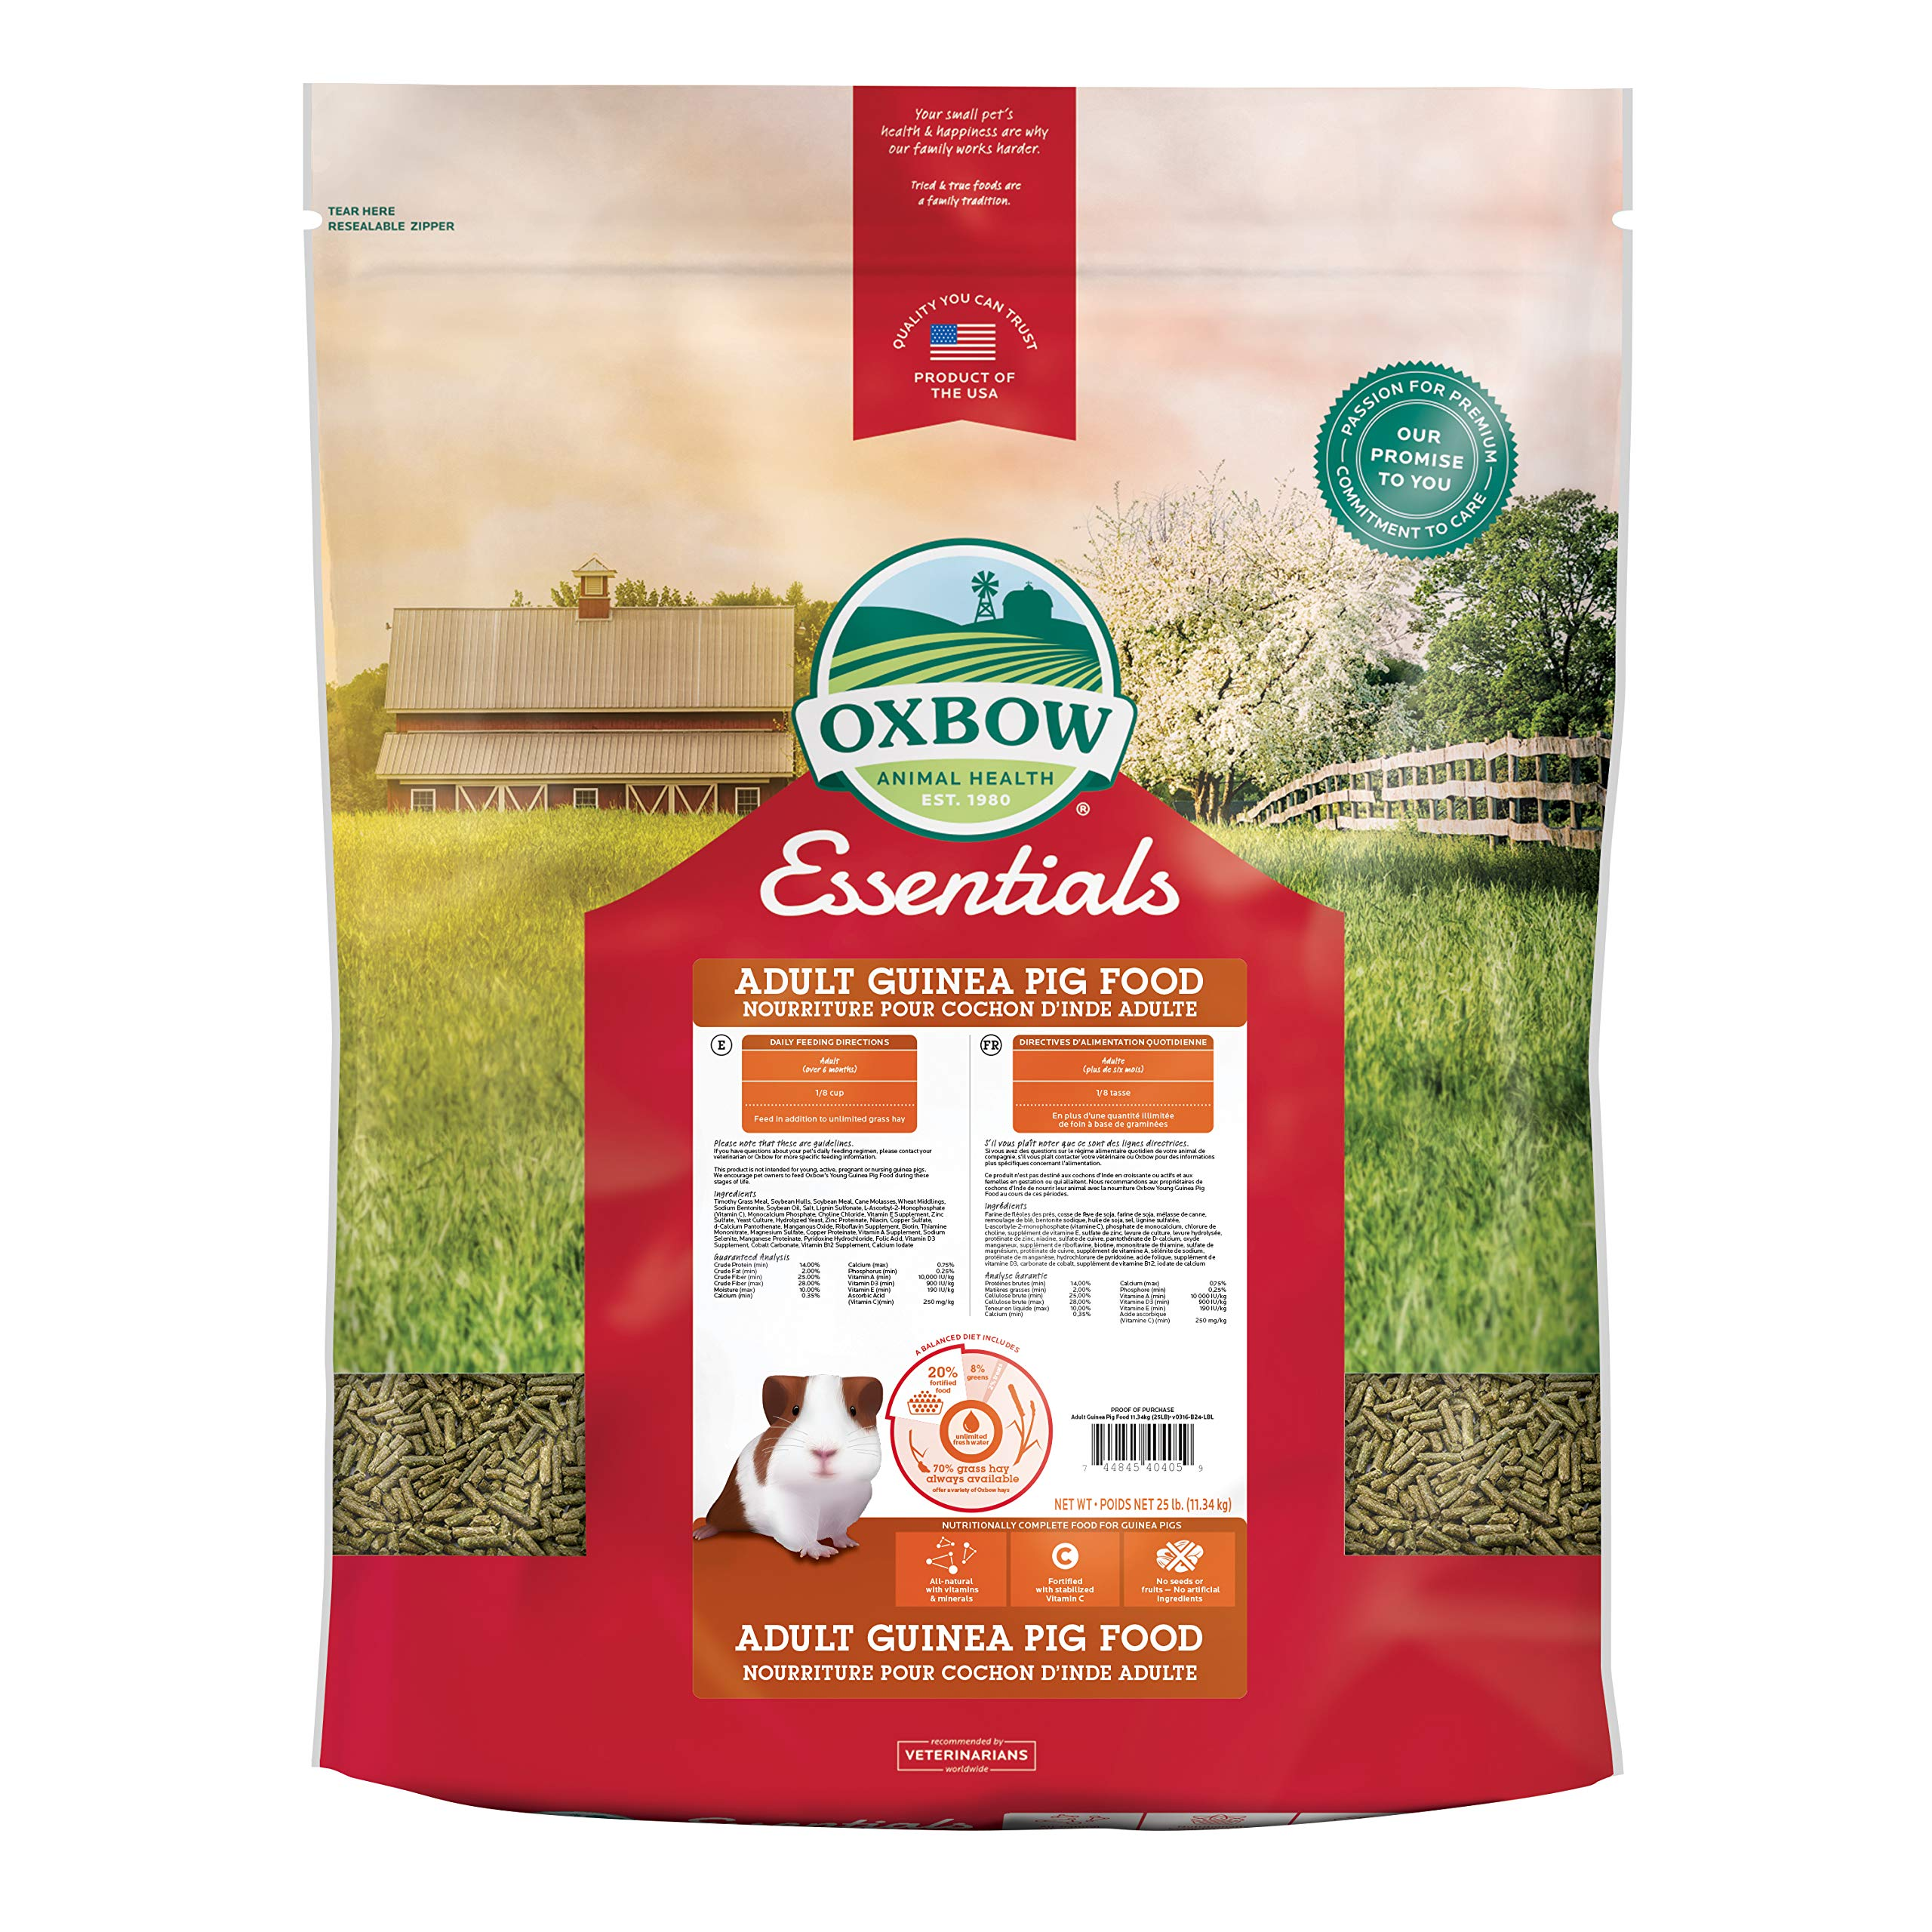 Oxbow Animal Health Cavy Cuisine Essentials Adult Guinea Pig Food, 25-Pound by Oxbow Animal Health